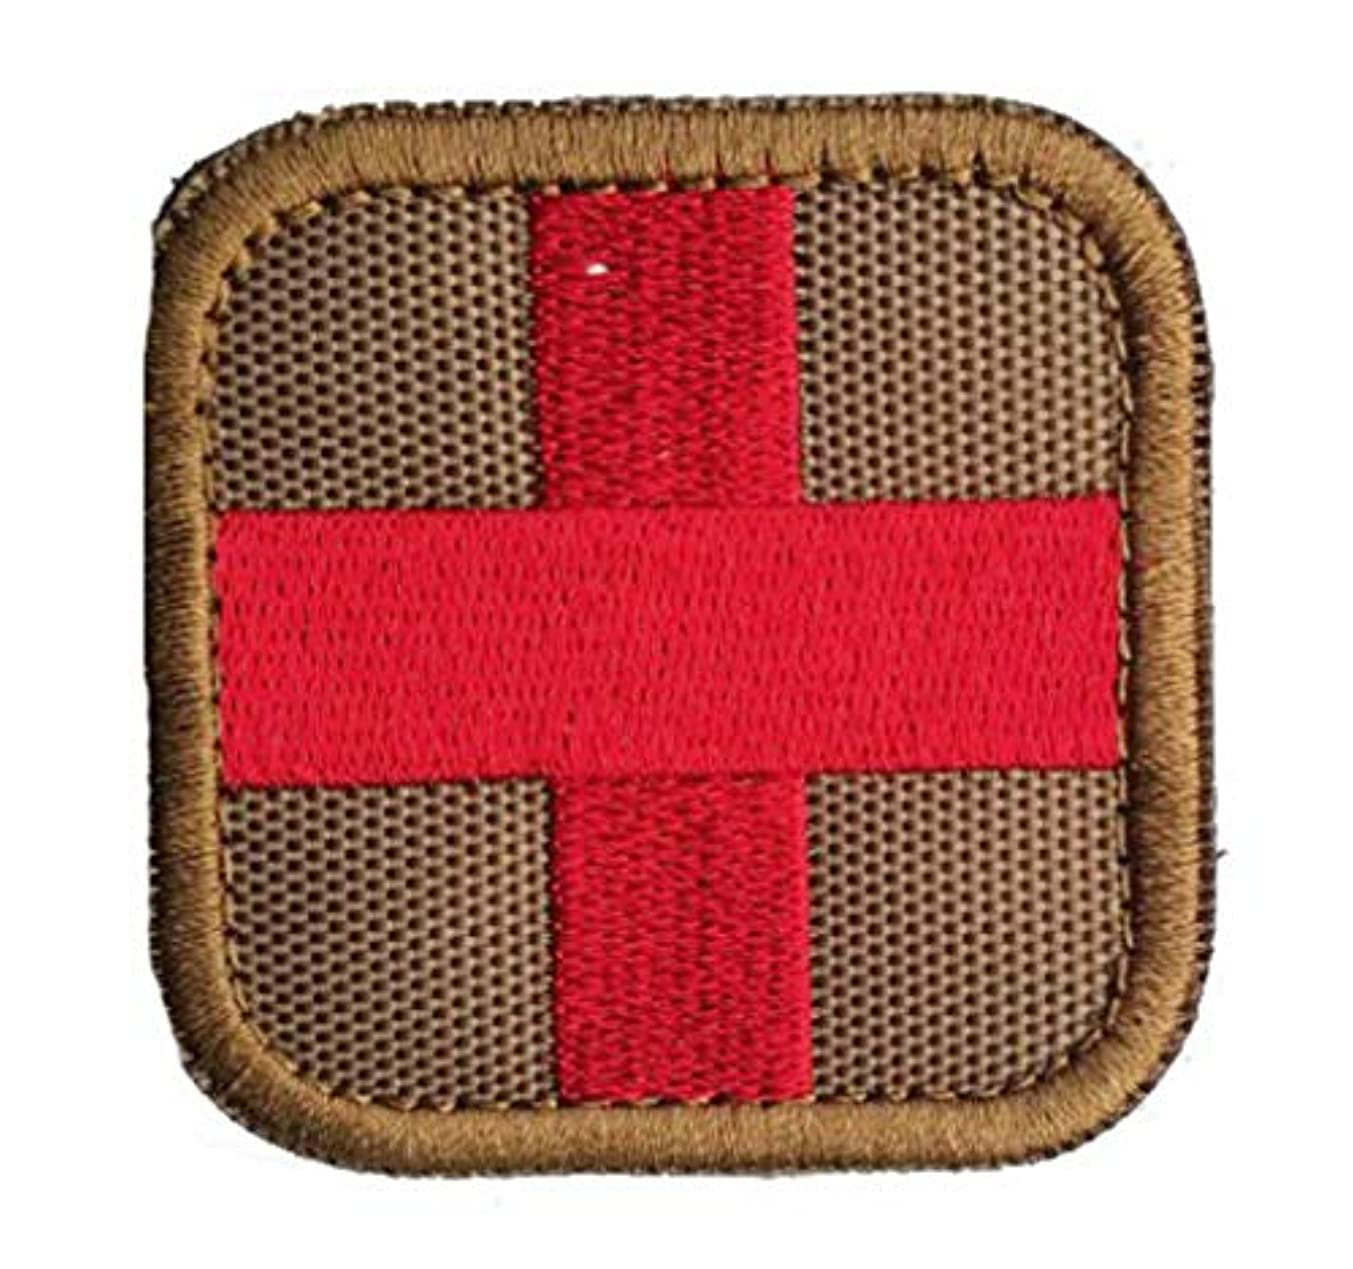 Embroidered Medic Cross Tactical Patch with Backing Decorative Badge Appliques (Tan/Red)